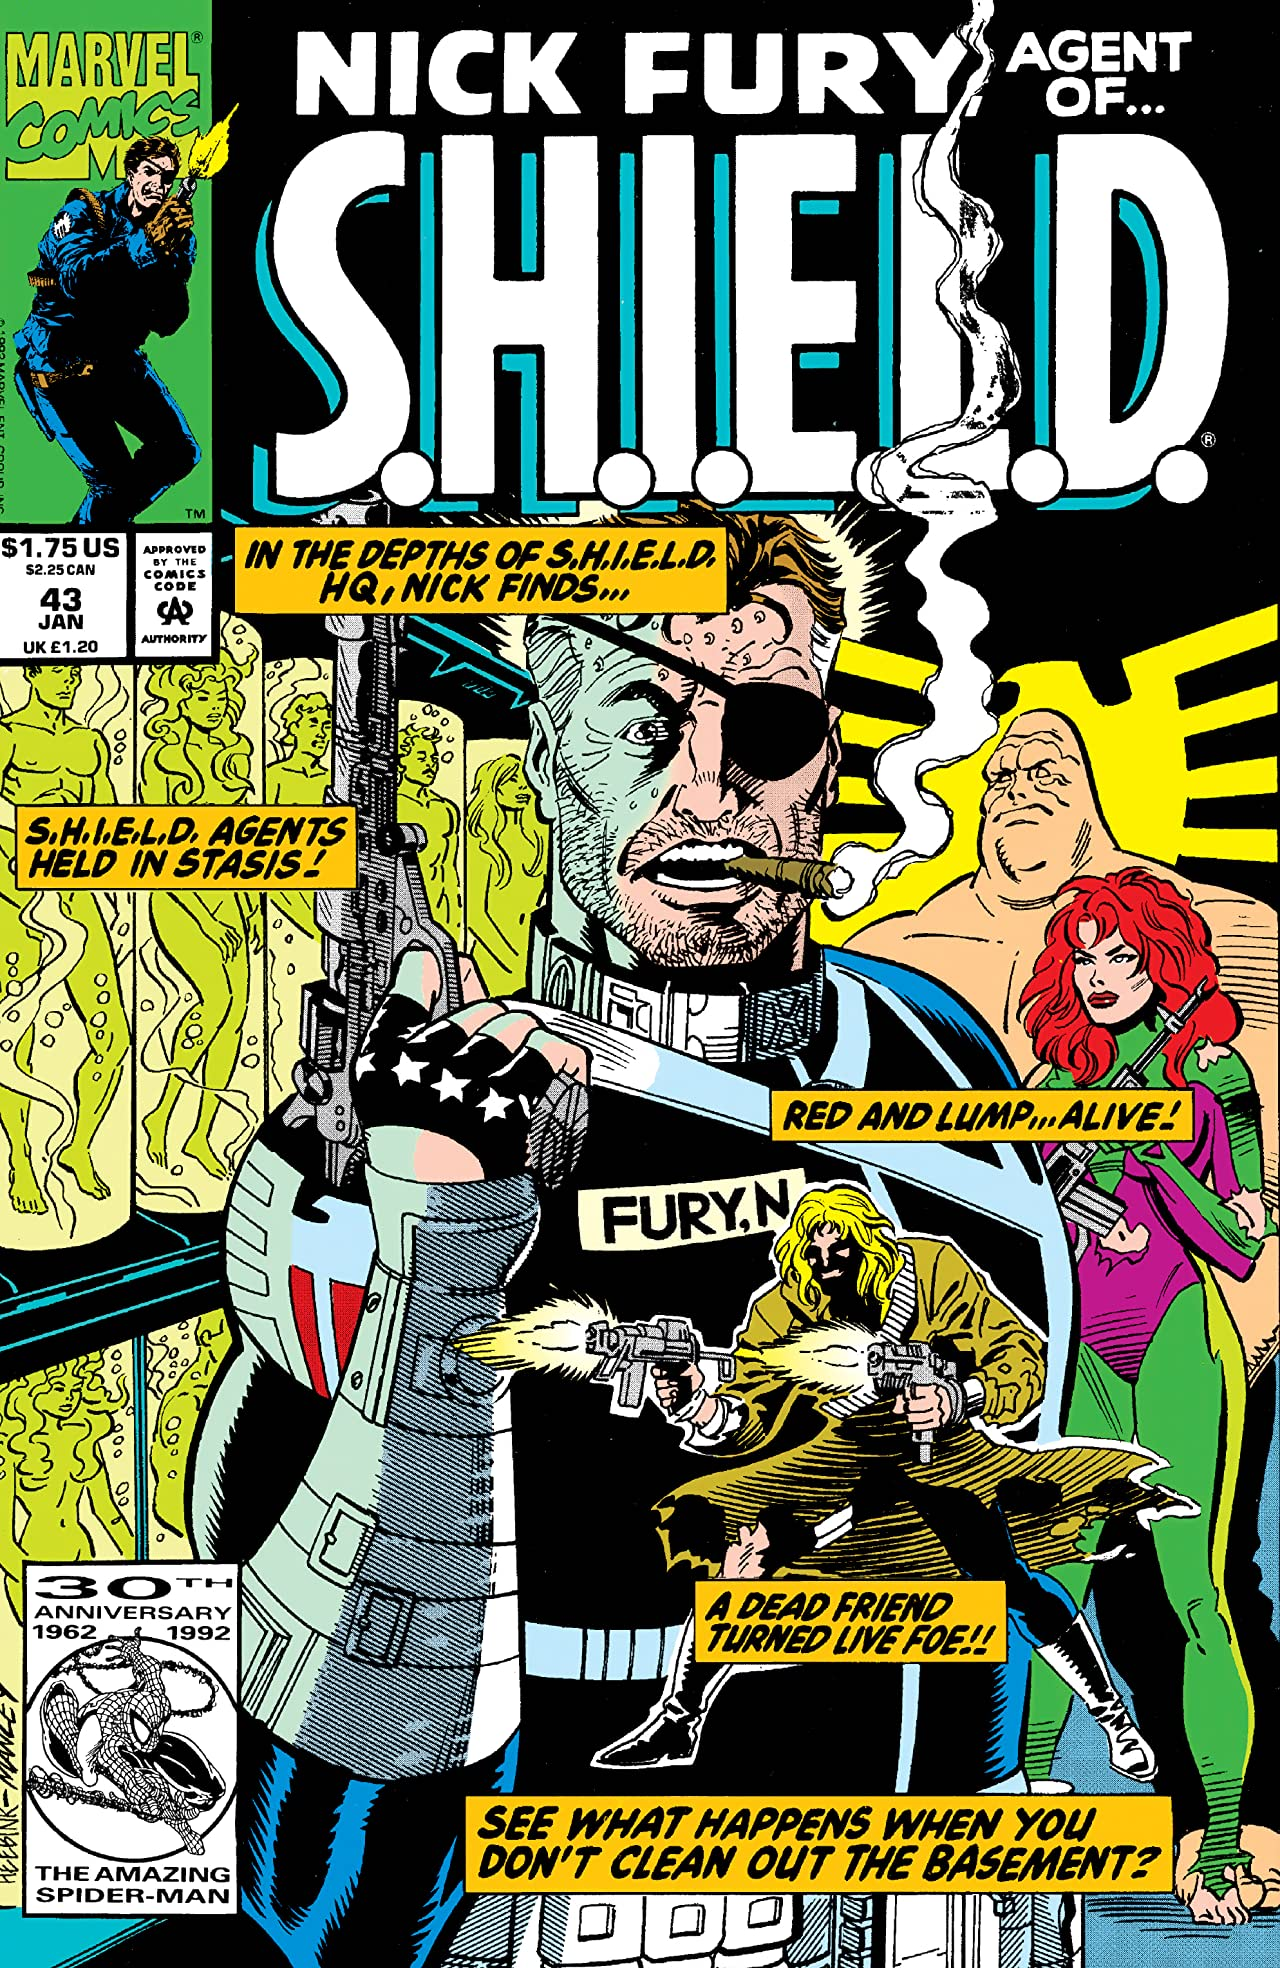 Nick Fury, Agent of S.H.I.E.L.D. (1989-1992) #43